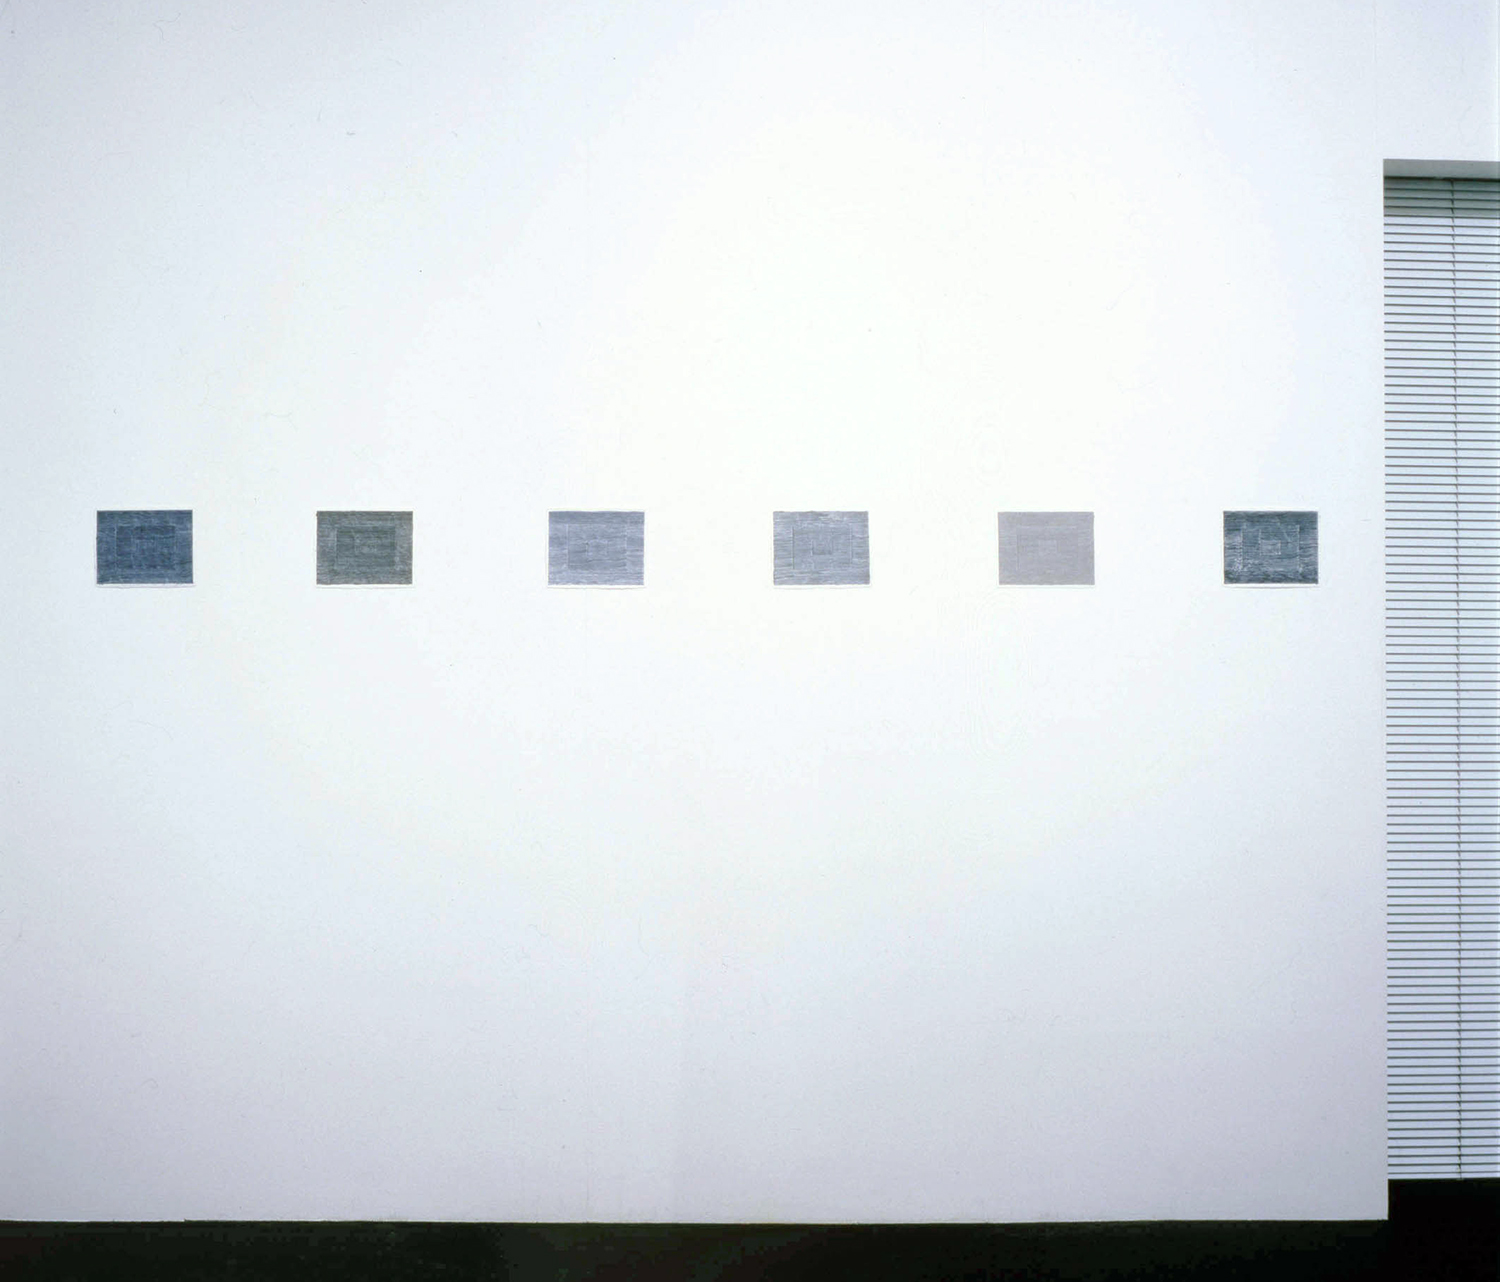 Untitled-Enclosure<br>acrylic & gesso on paper 18 x 22.8 cm 1997 each